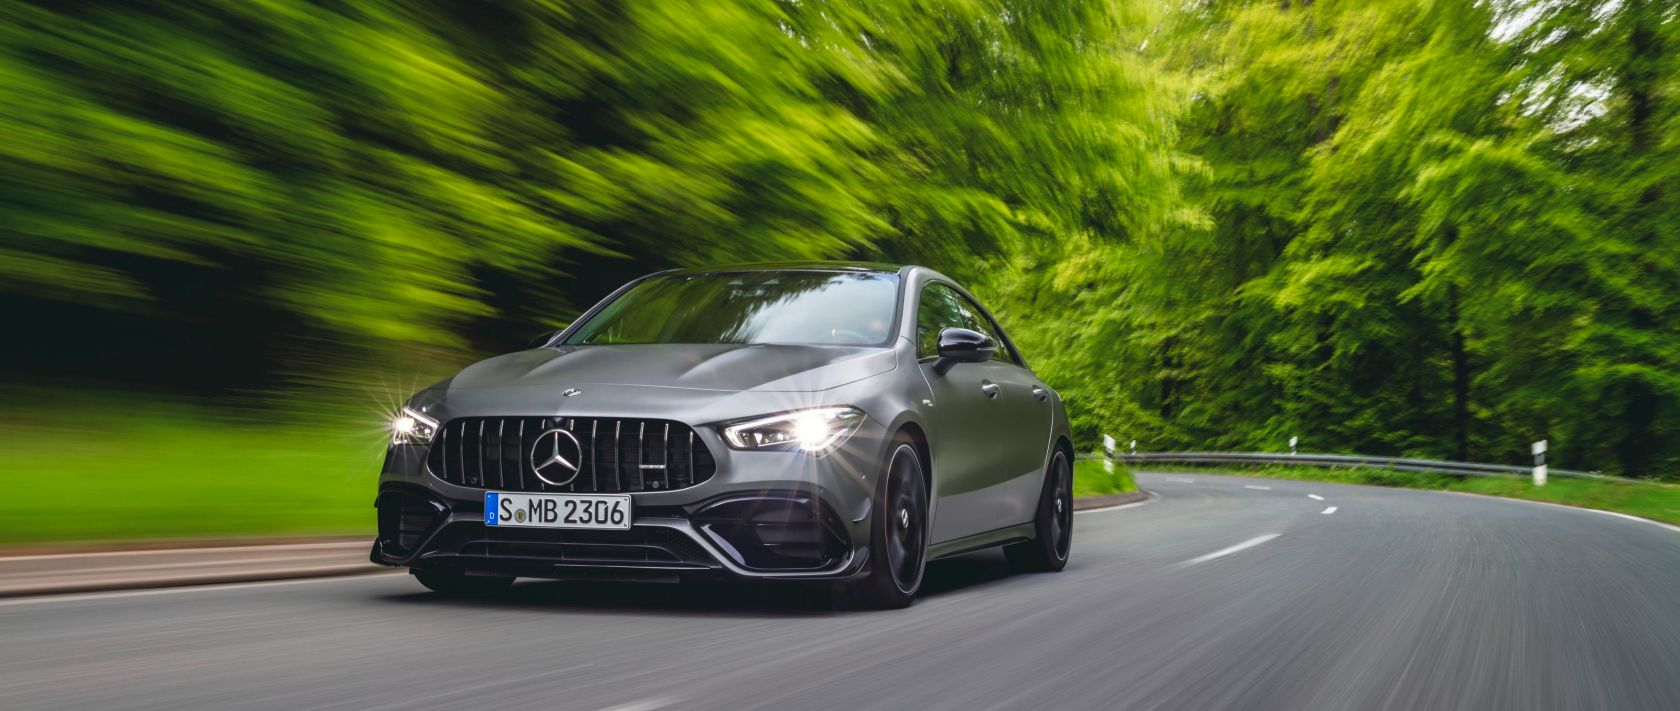 Vorderansicht des neuen 2020er Mercedes-AMG CLA 45 S 4MATIC+ Coupé (C 118) in Design Mountaingrau Magno.